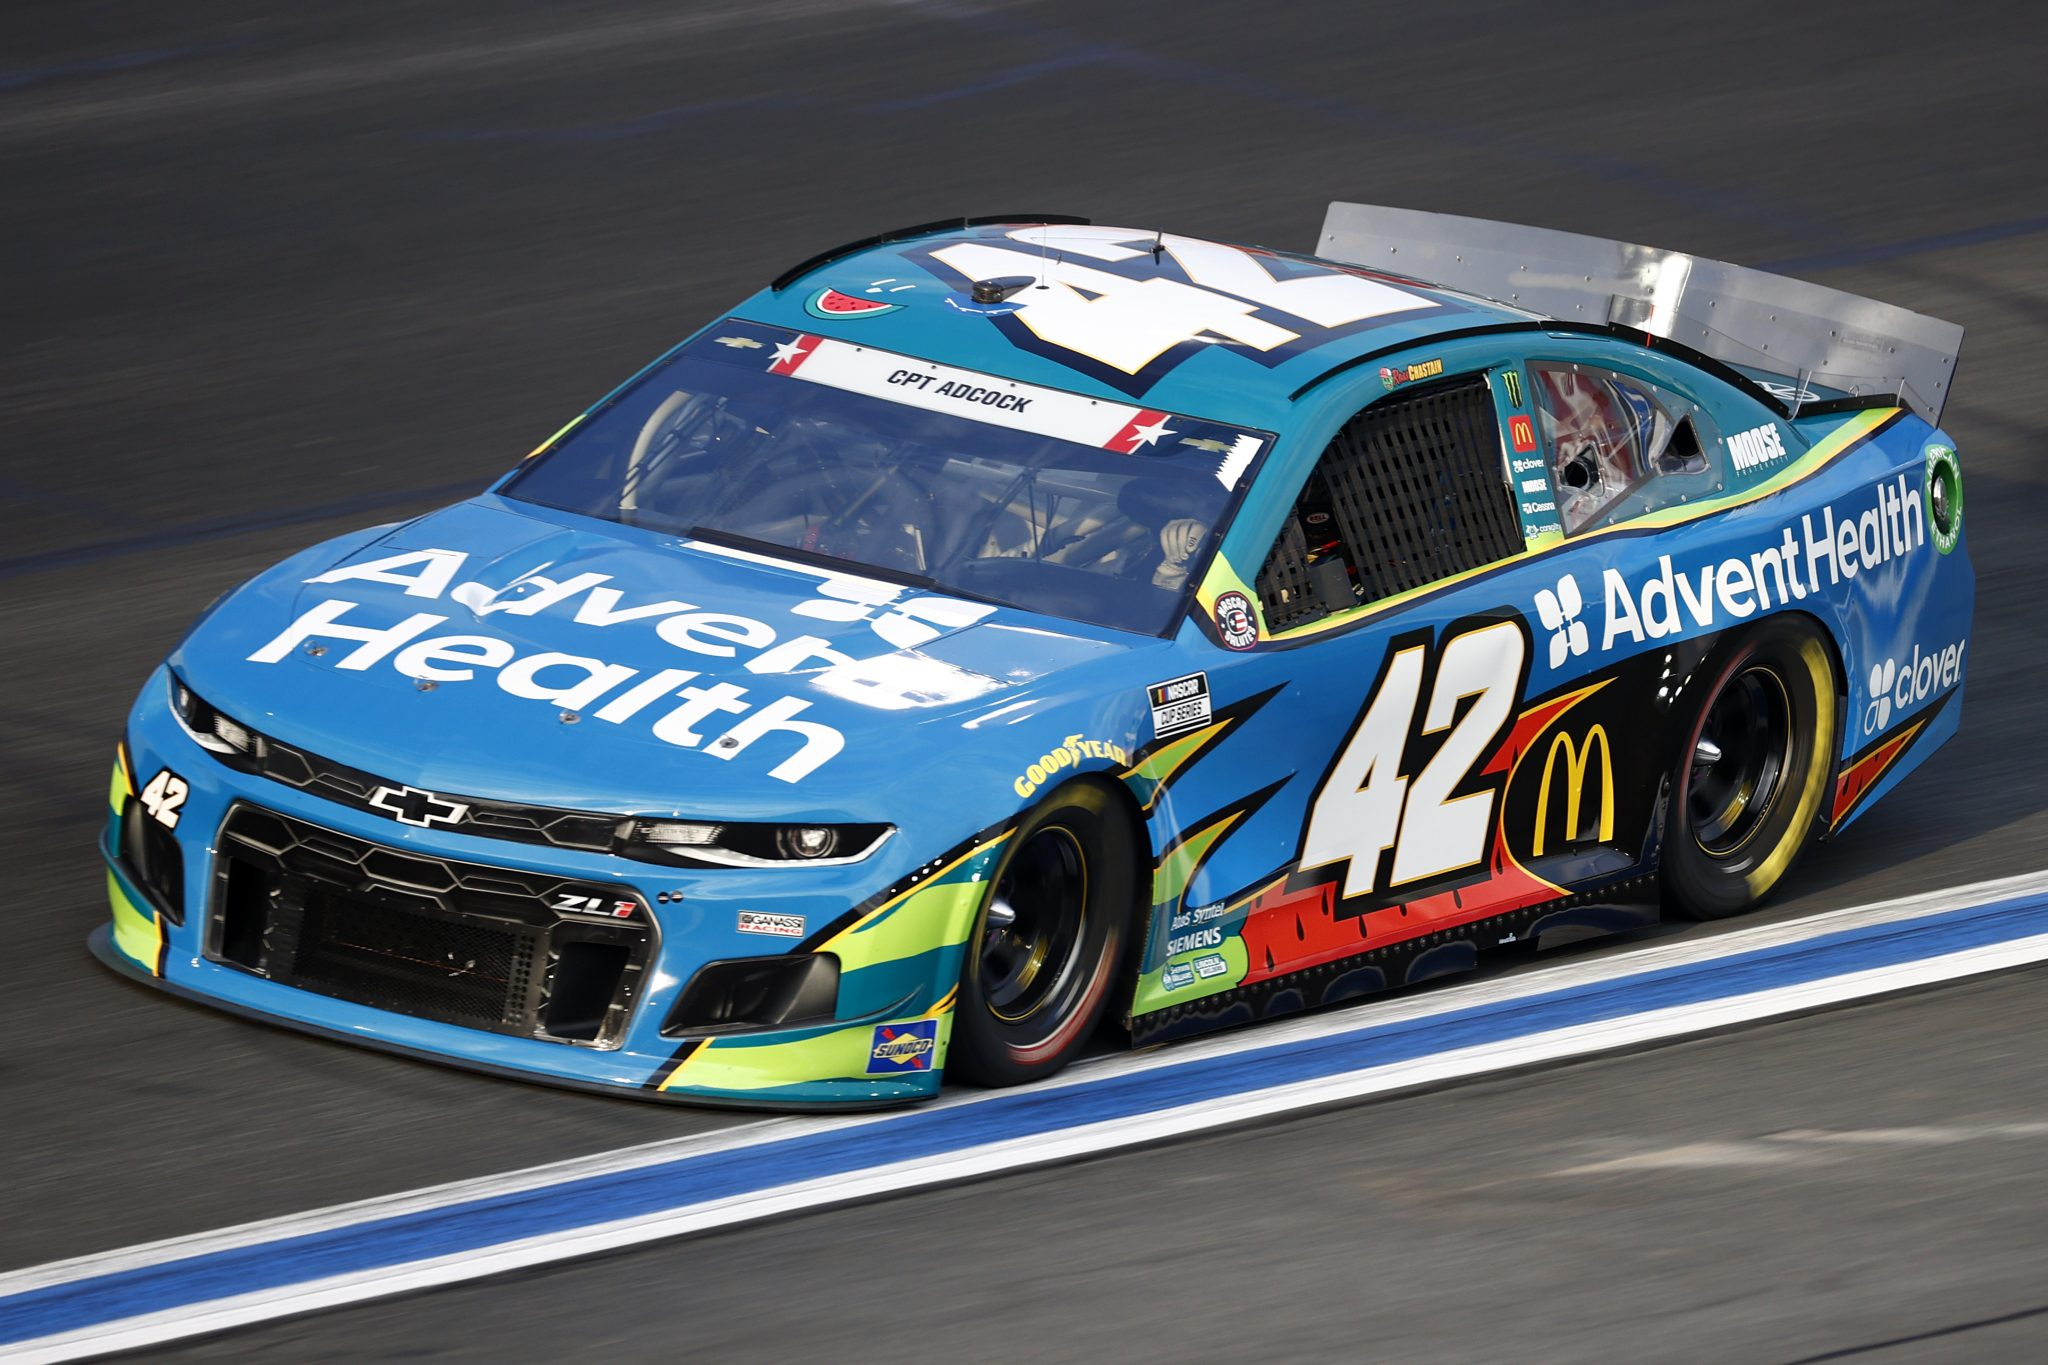 CONCORD, NORTH CAROLINA - MAY 28: Ross Chastain, driver of the #42 Advent Health Chevrolet, drives during practice for the NASCAR Cup Series Coca-Cola 600 at Charlotte Motor Speedway on May 28, 2021 in Concord, North Carolina. (Photo by Jared C. Tilton/Getty Images) | Getty Images